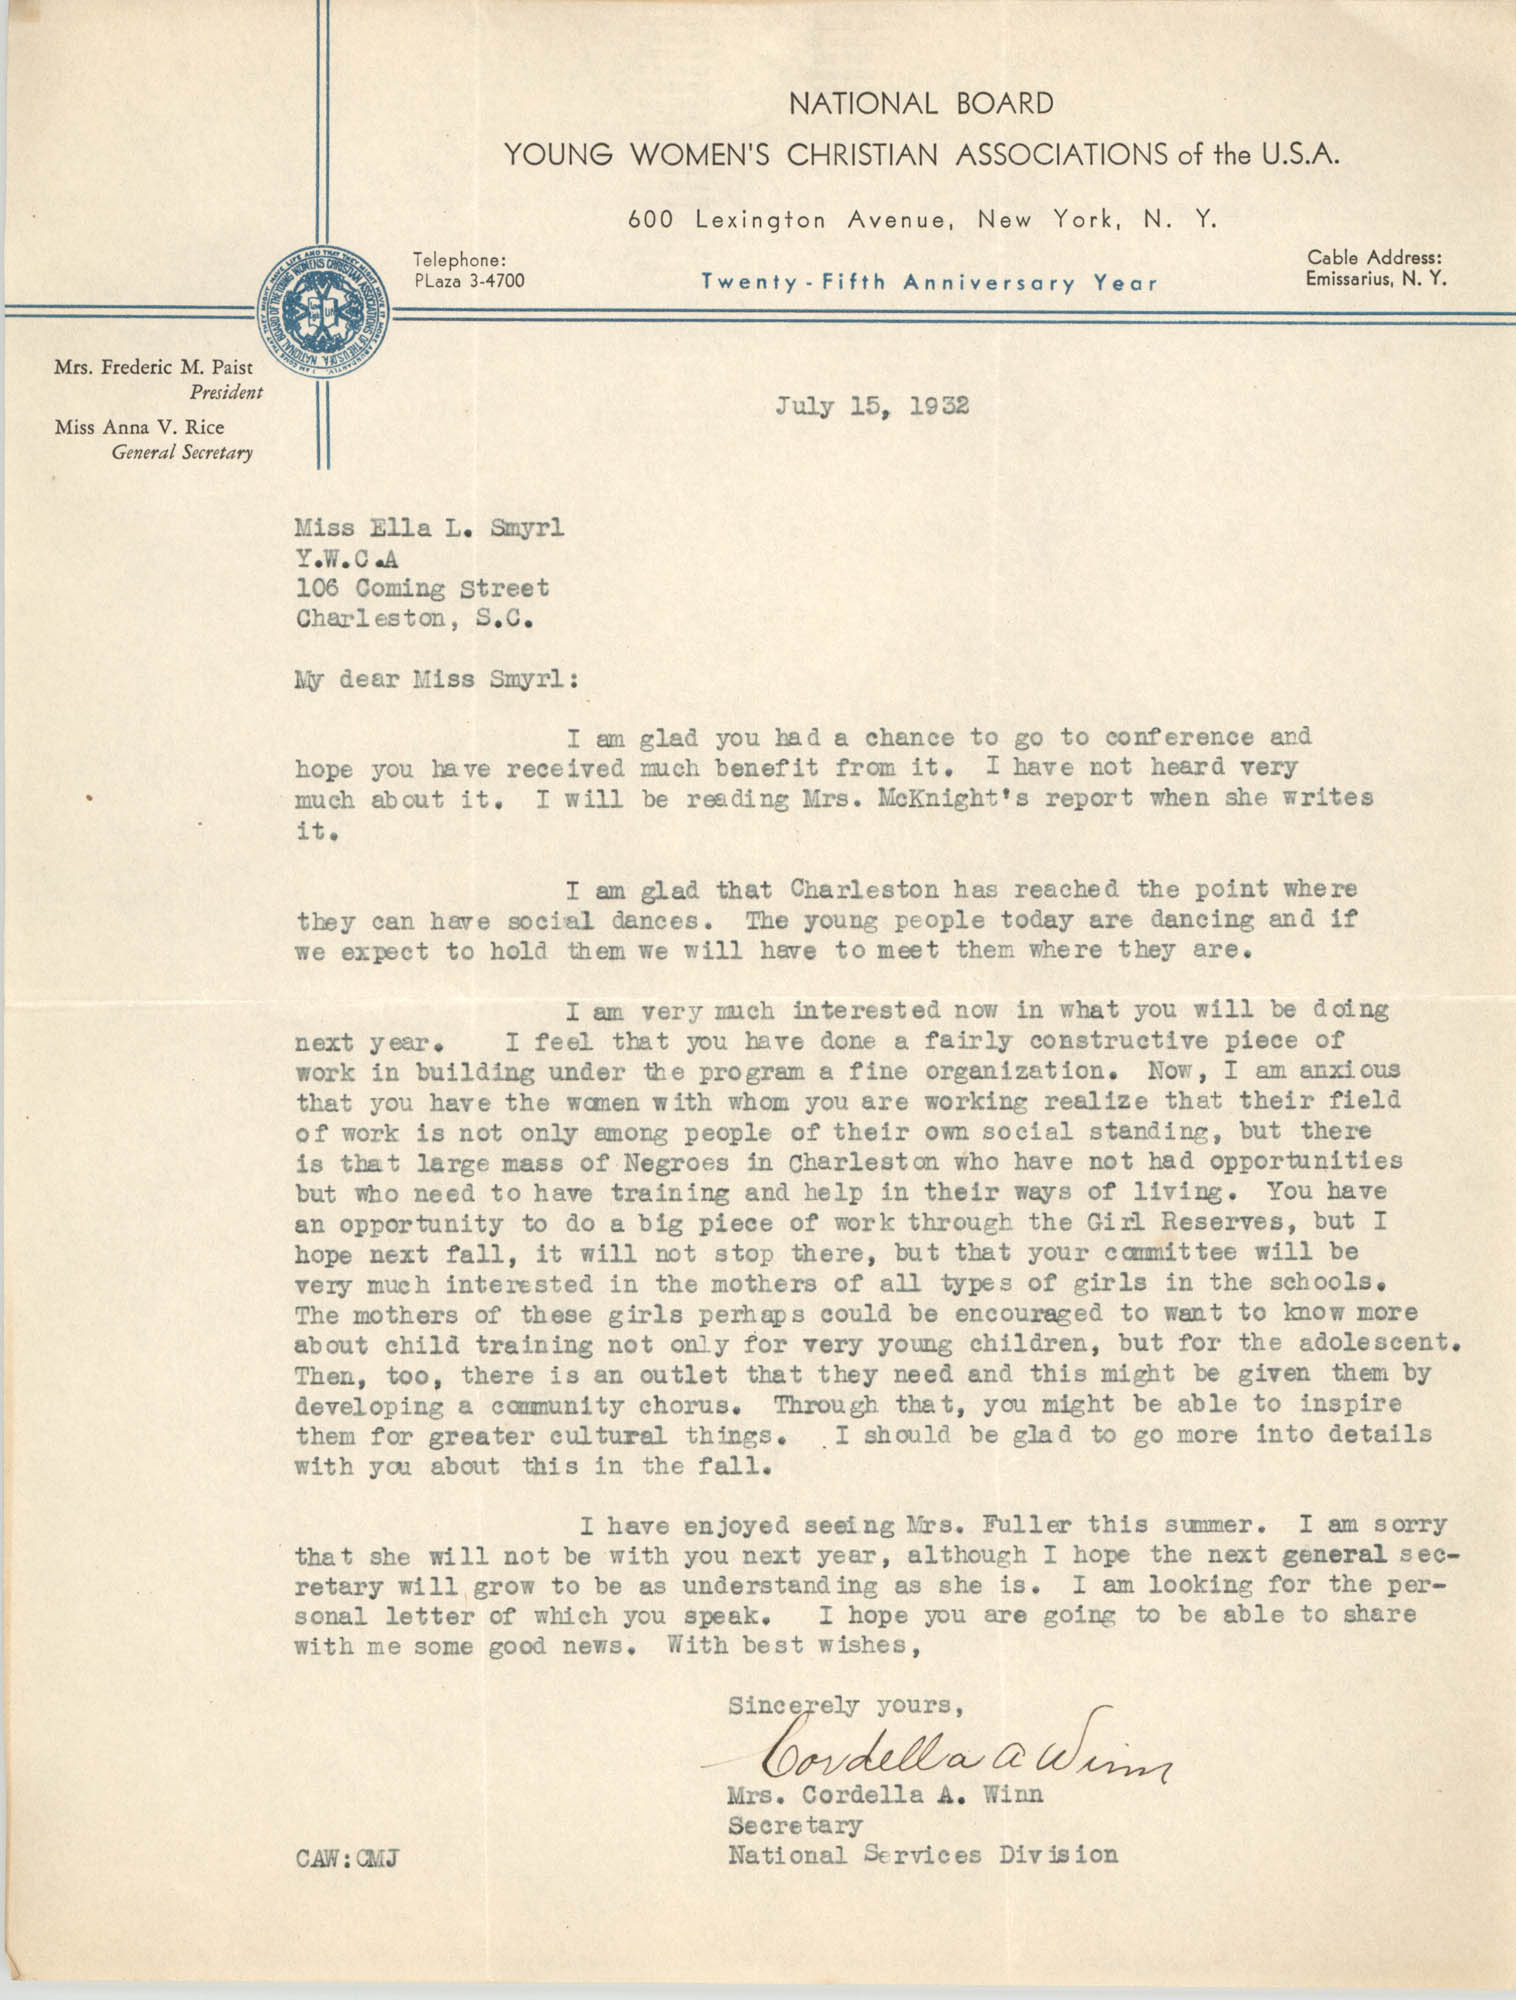 Letter from Cordella A. Winn to Ella L. Smyrl, June 15, 1932